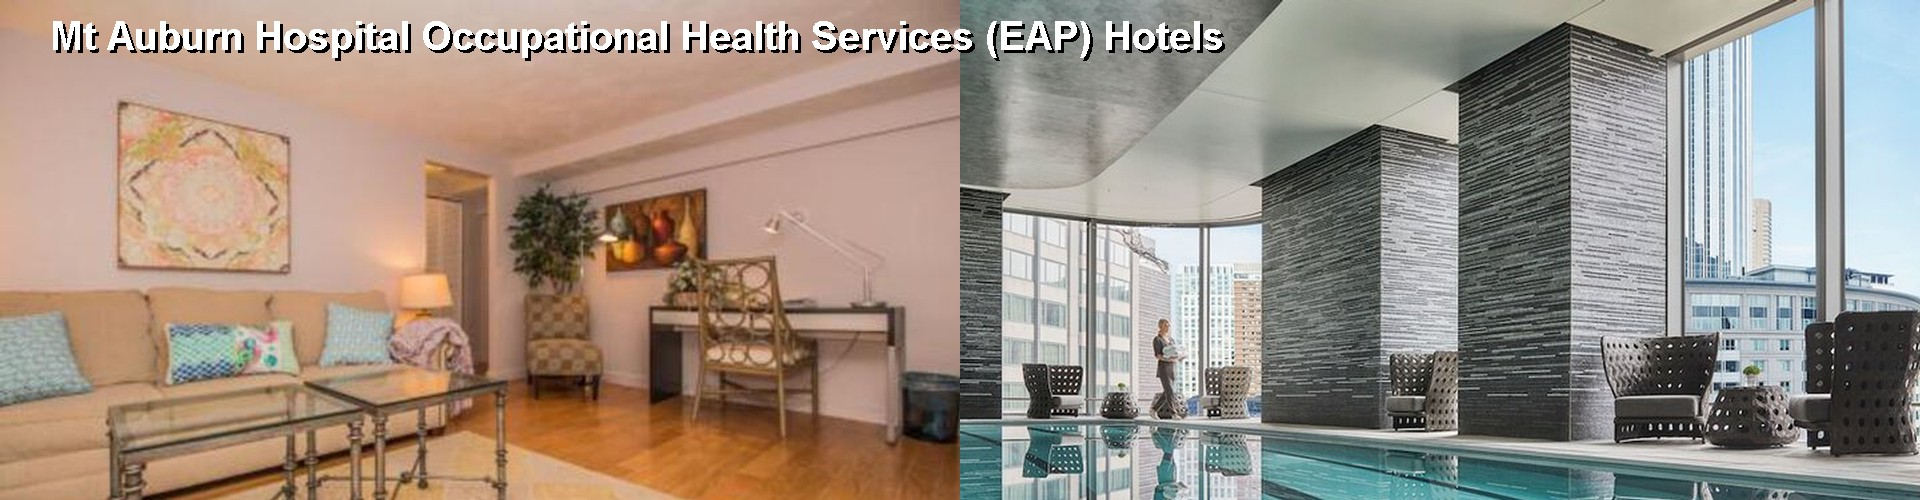 5 Best Hotels near Mt Auburn Hospital Occupational Health Services (EAP)